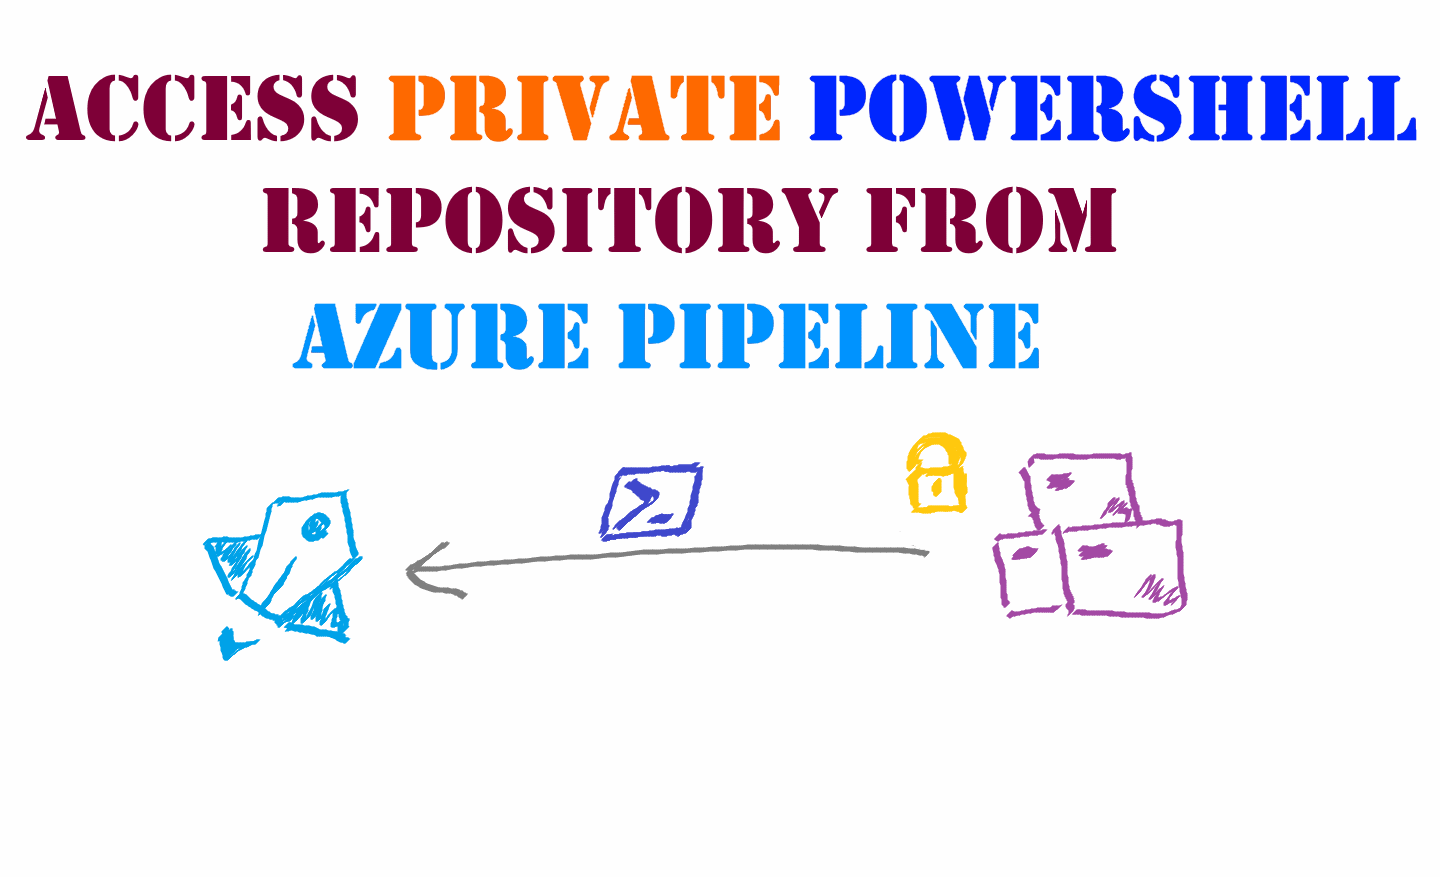 How to access private PowerShell repository from Azure pipeline